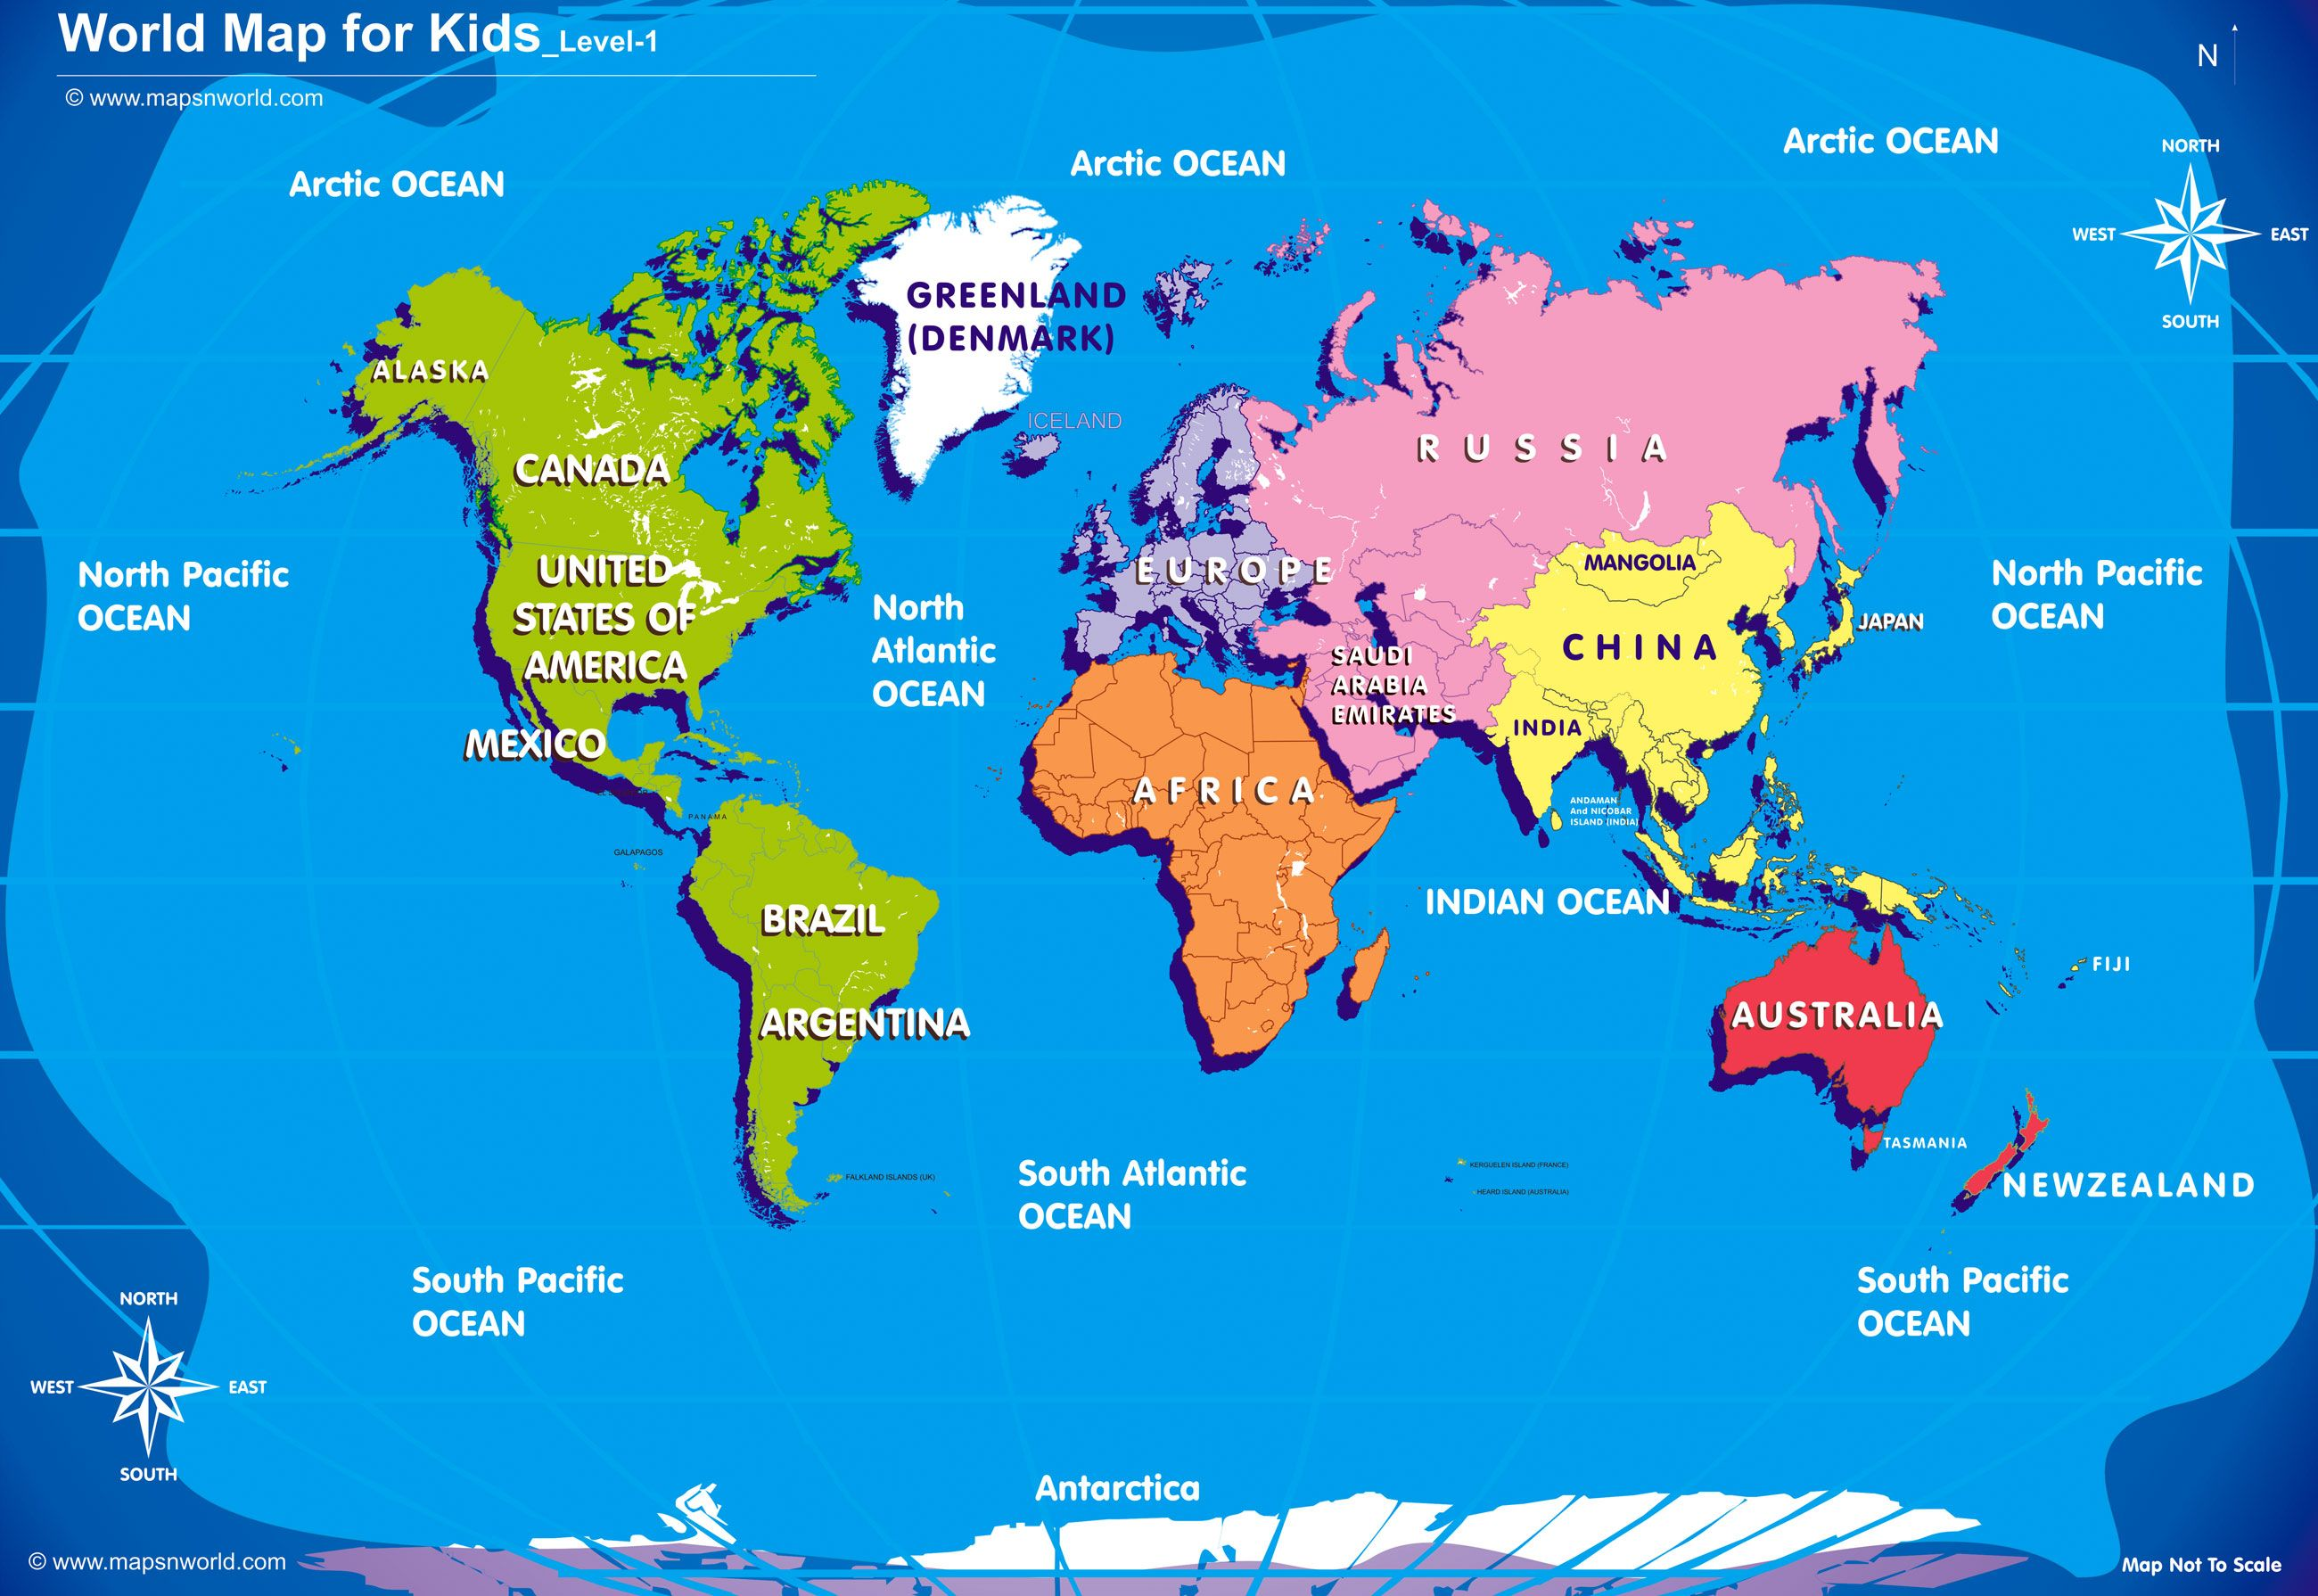 - Pin By Suhina Agarwal On Play Block Project Kids World Map, Maps